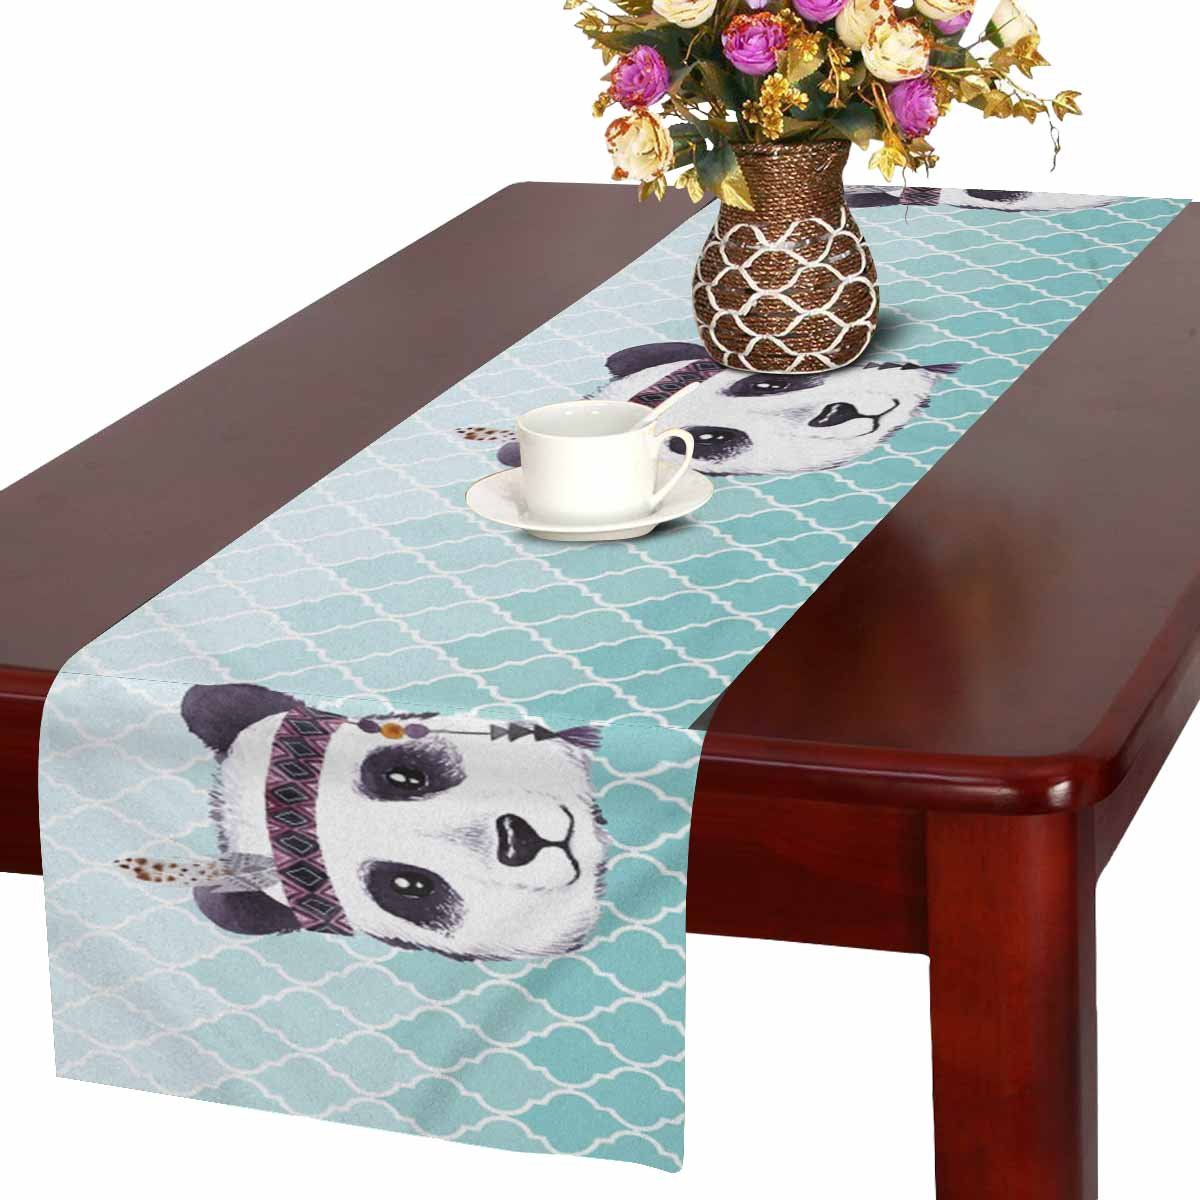 InterestPrint Bohemian Pandas with Feathers Cute Animal with Teal Moroccan Trellis Table Runner Cotton Linen Cloth Placemat for Office Kitchen Dining Wedding Party Banquet 16 x 72 Inches